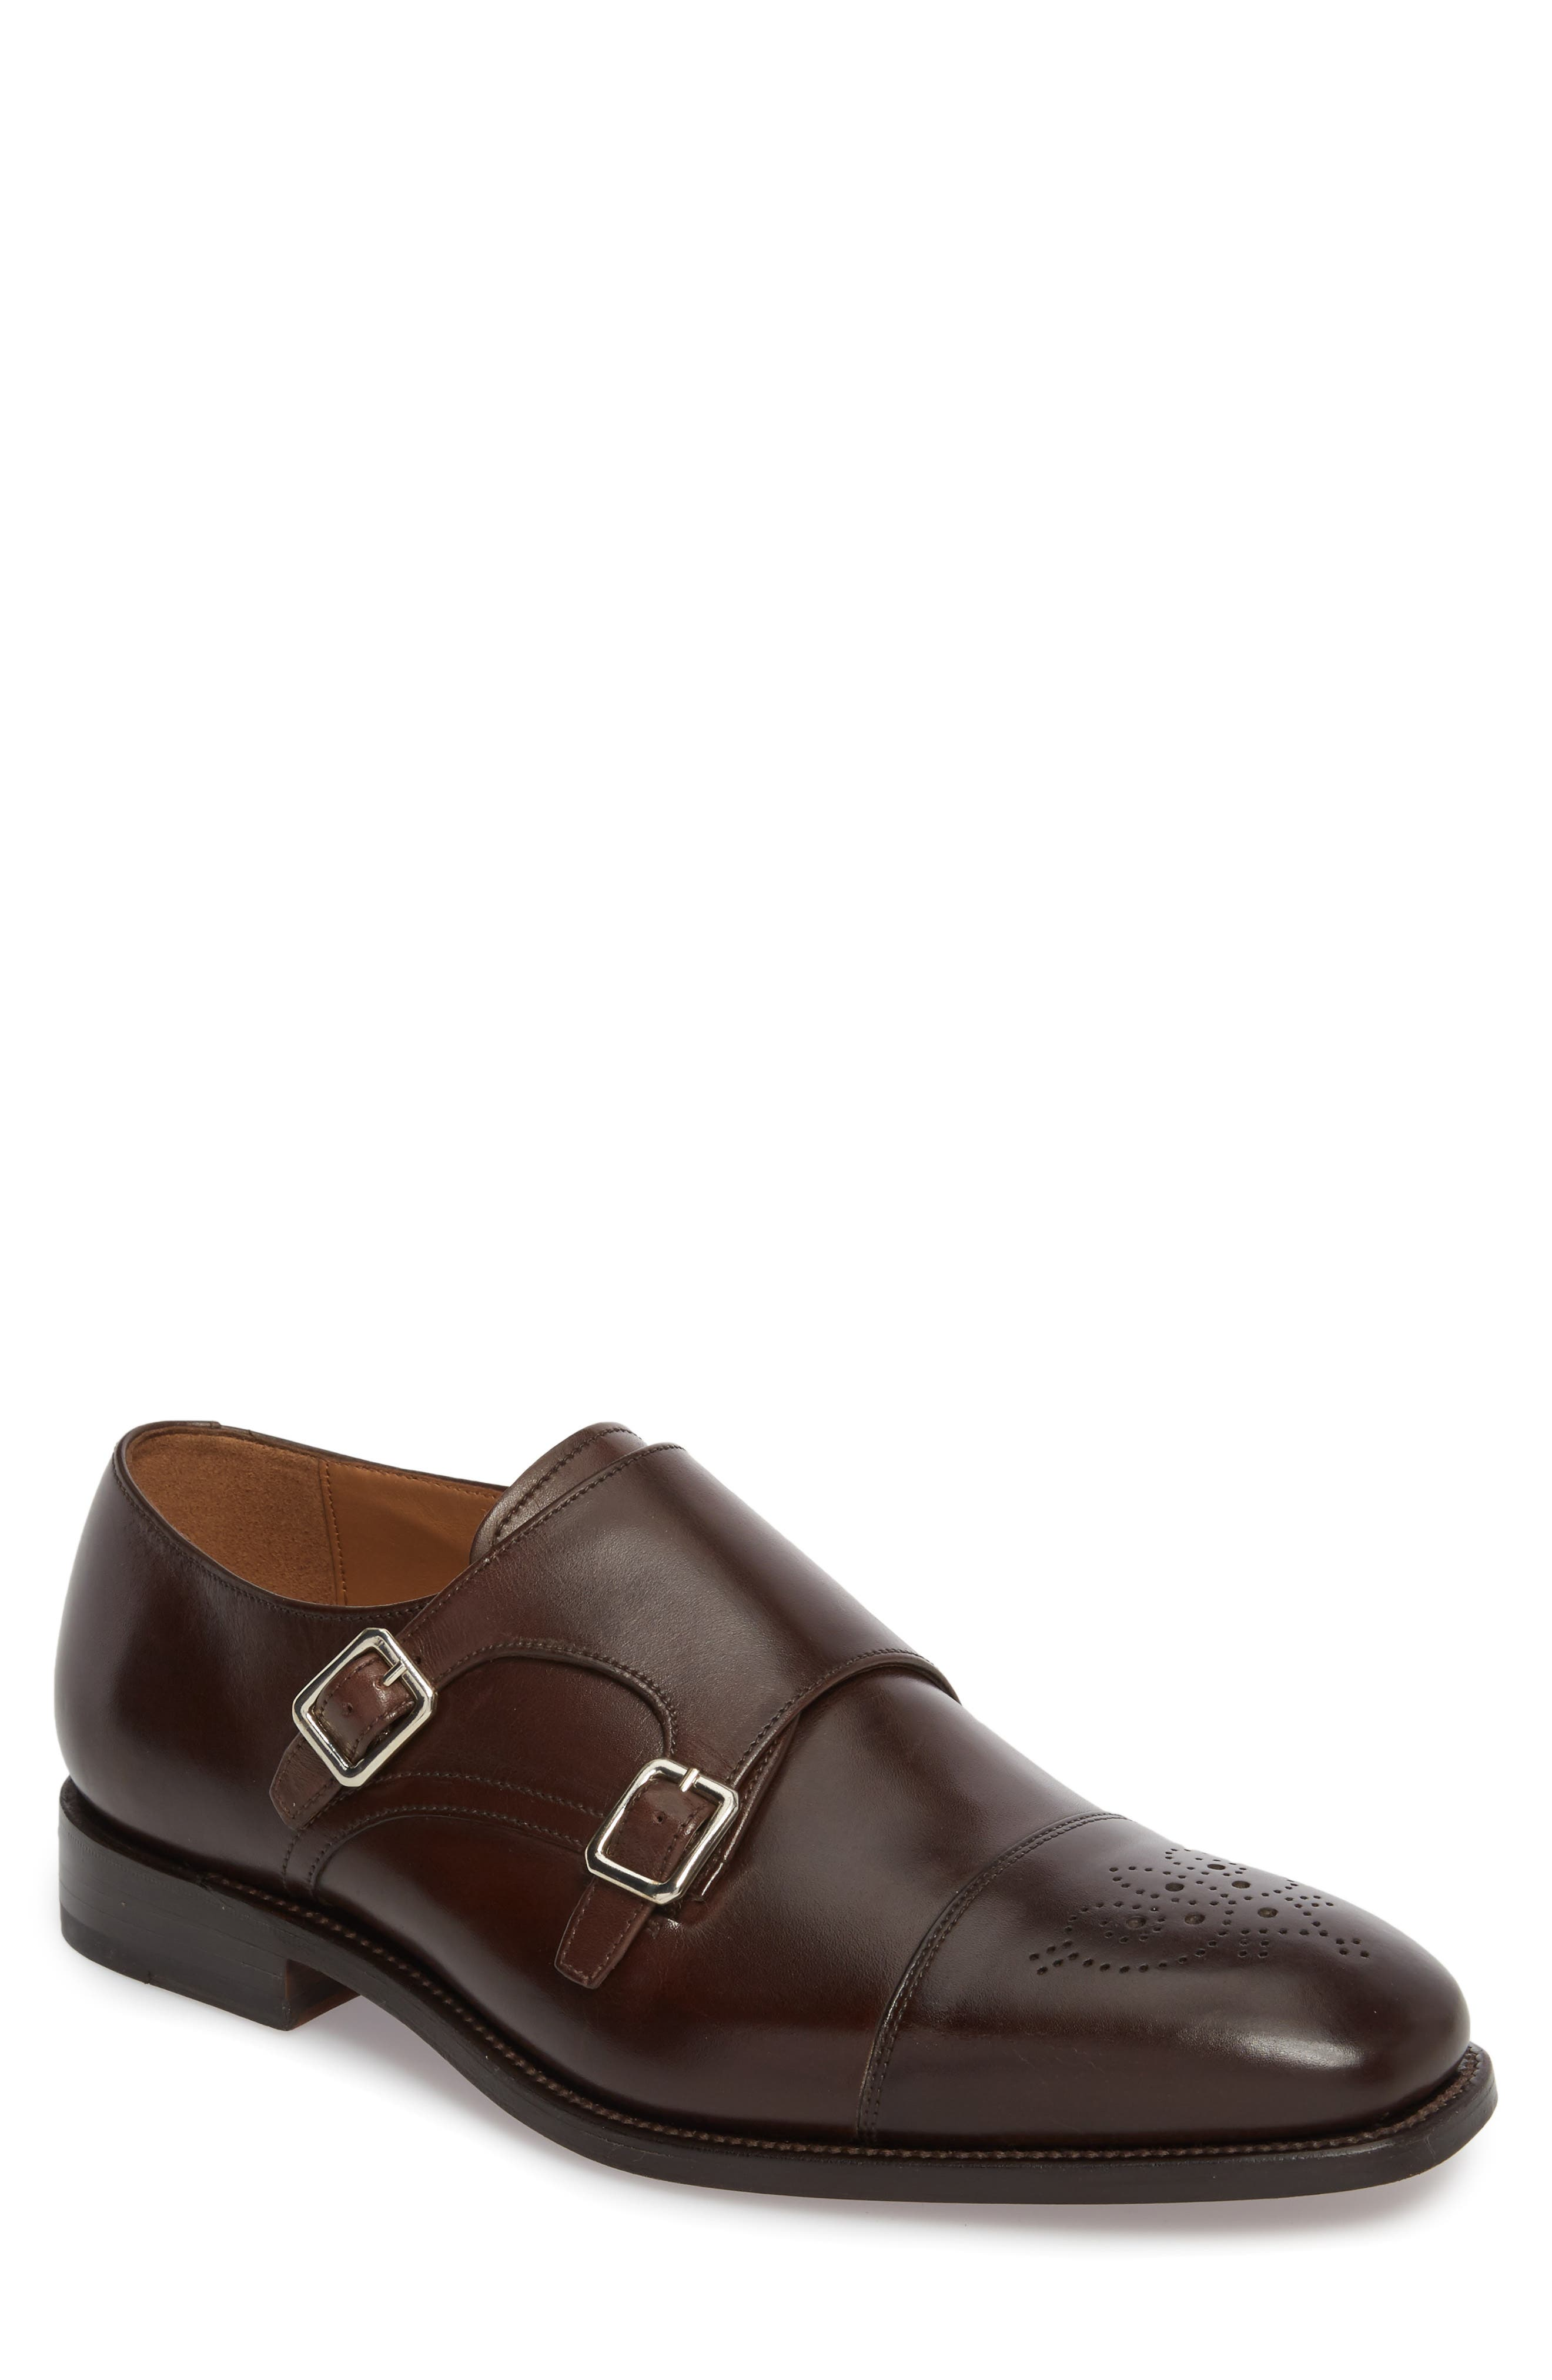 ROBERT TALBOTT Men's Sausalito Double Monk Strap Shoe Fpt6Ynh